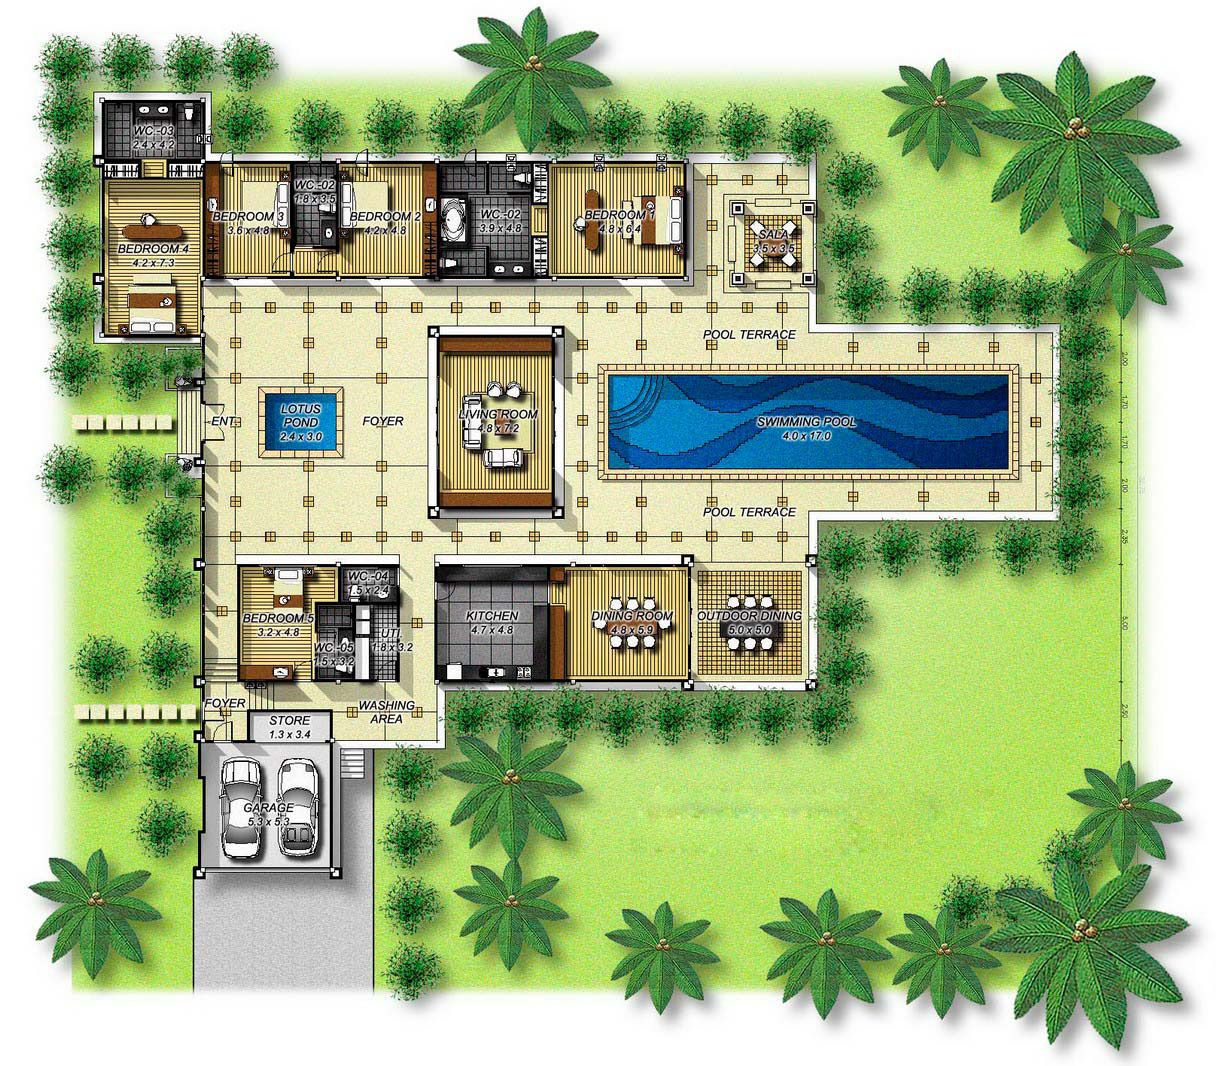 House plans with courtyards in the center central for Garden pool plans